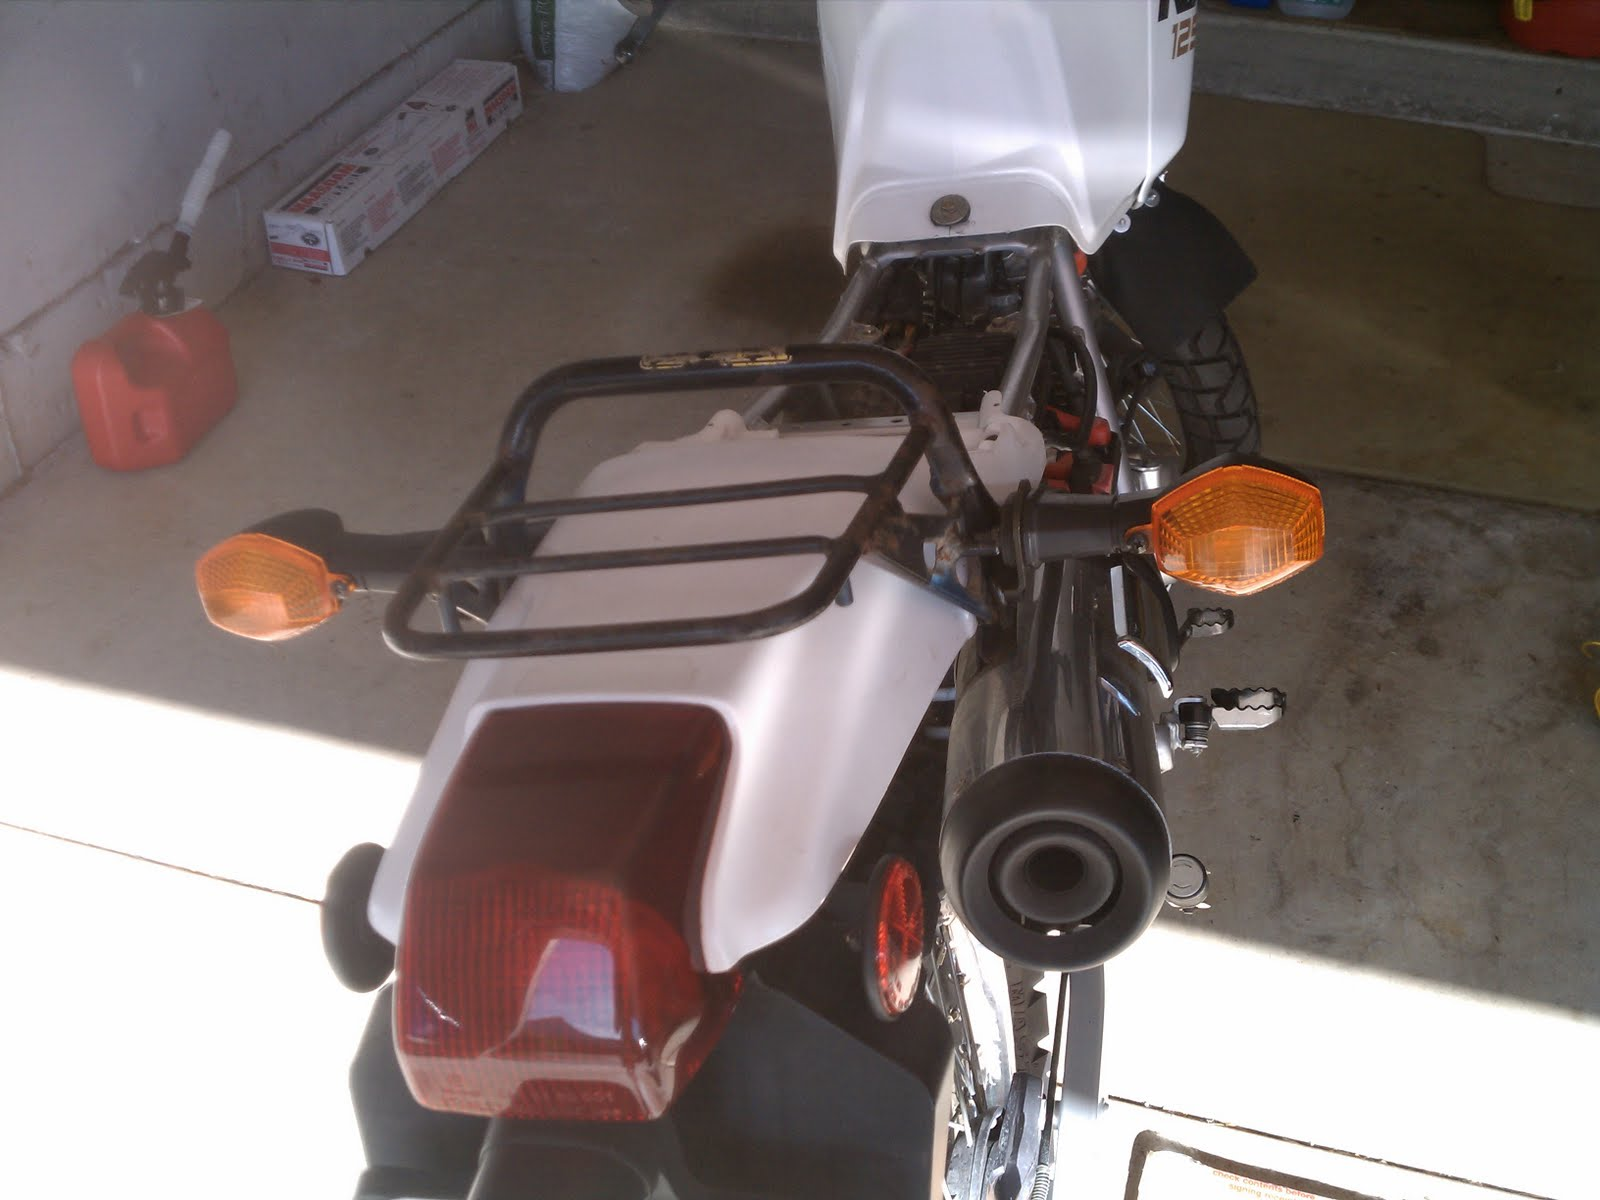 Commuter Nx Transition Custom Rear Rack To Factory Wiring Harness Sleeve I Also Used Some Honda Protect The Wires From Dirt Debris Water Etc There Are Not Three Middle One Is A